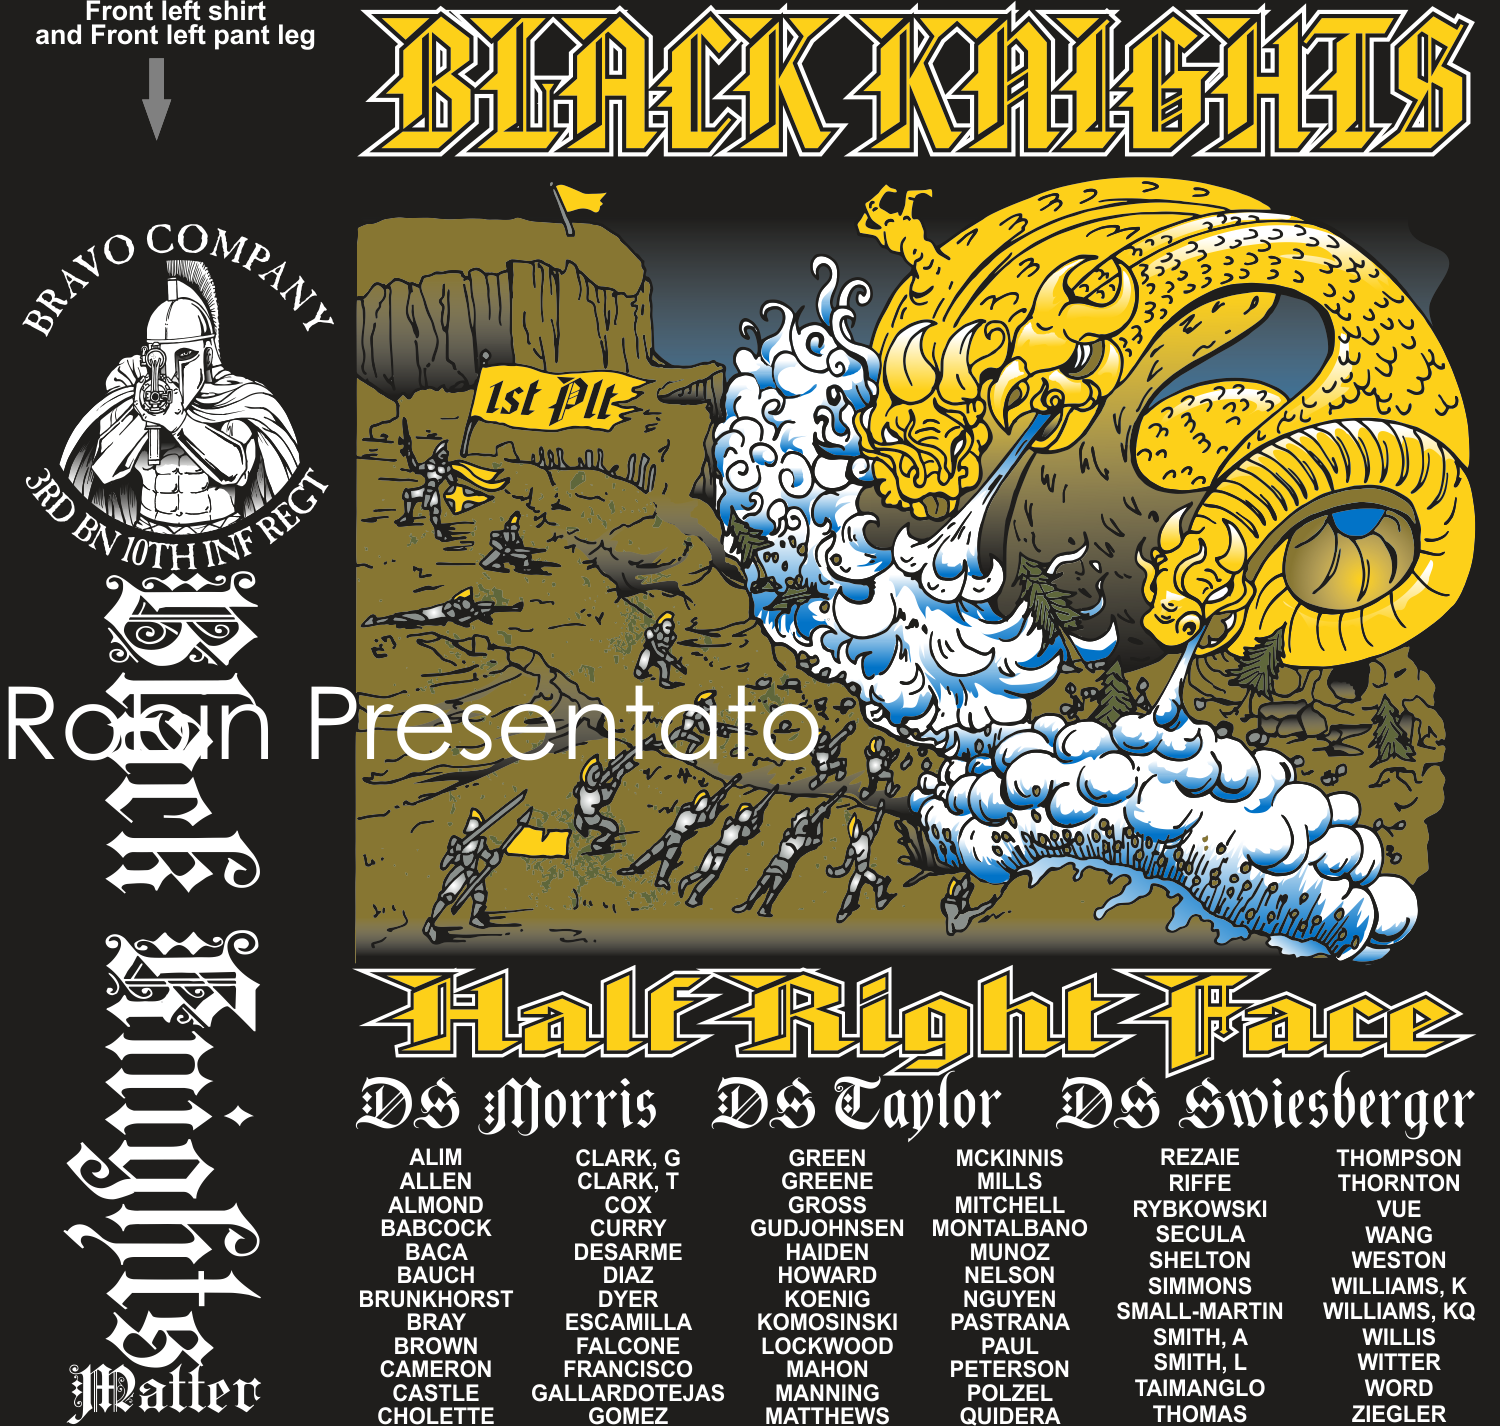 BRAVO 3-10 BLACK KNIGHT GRADUATING 12-19-2017 digital